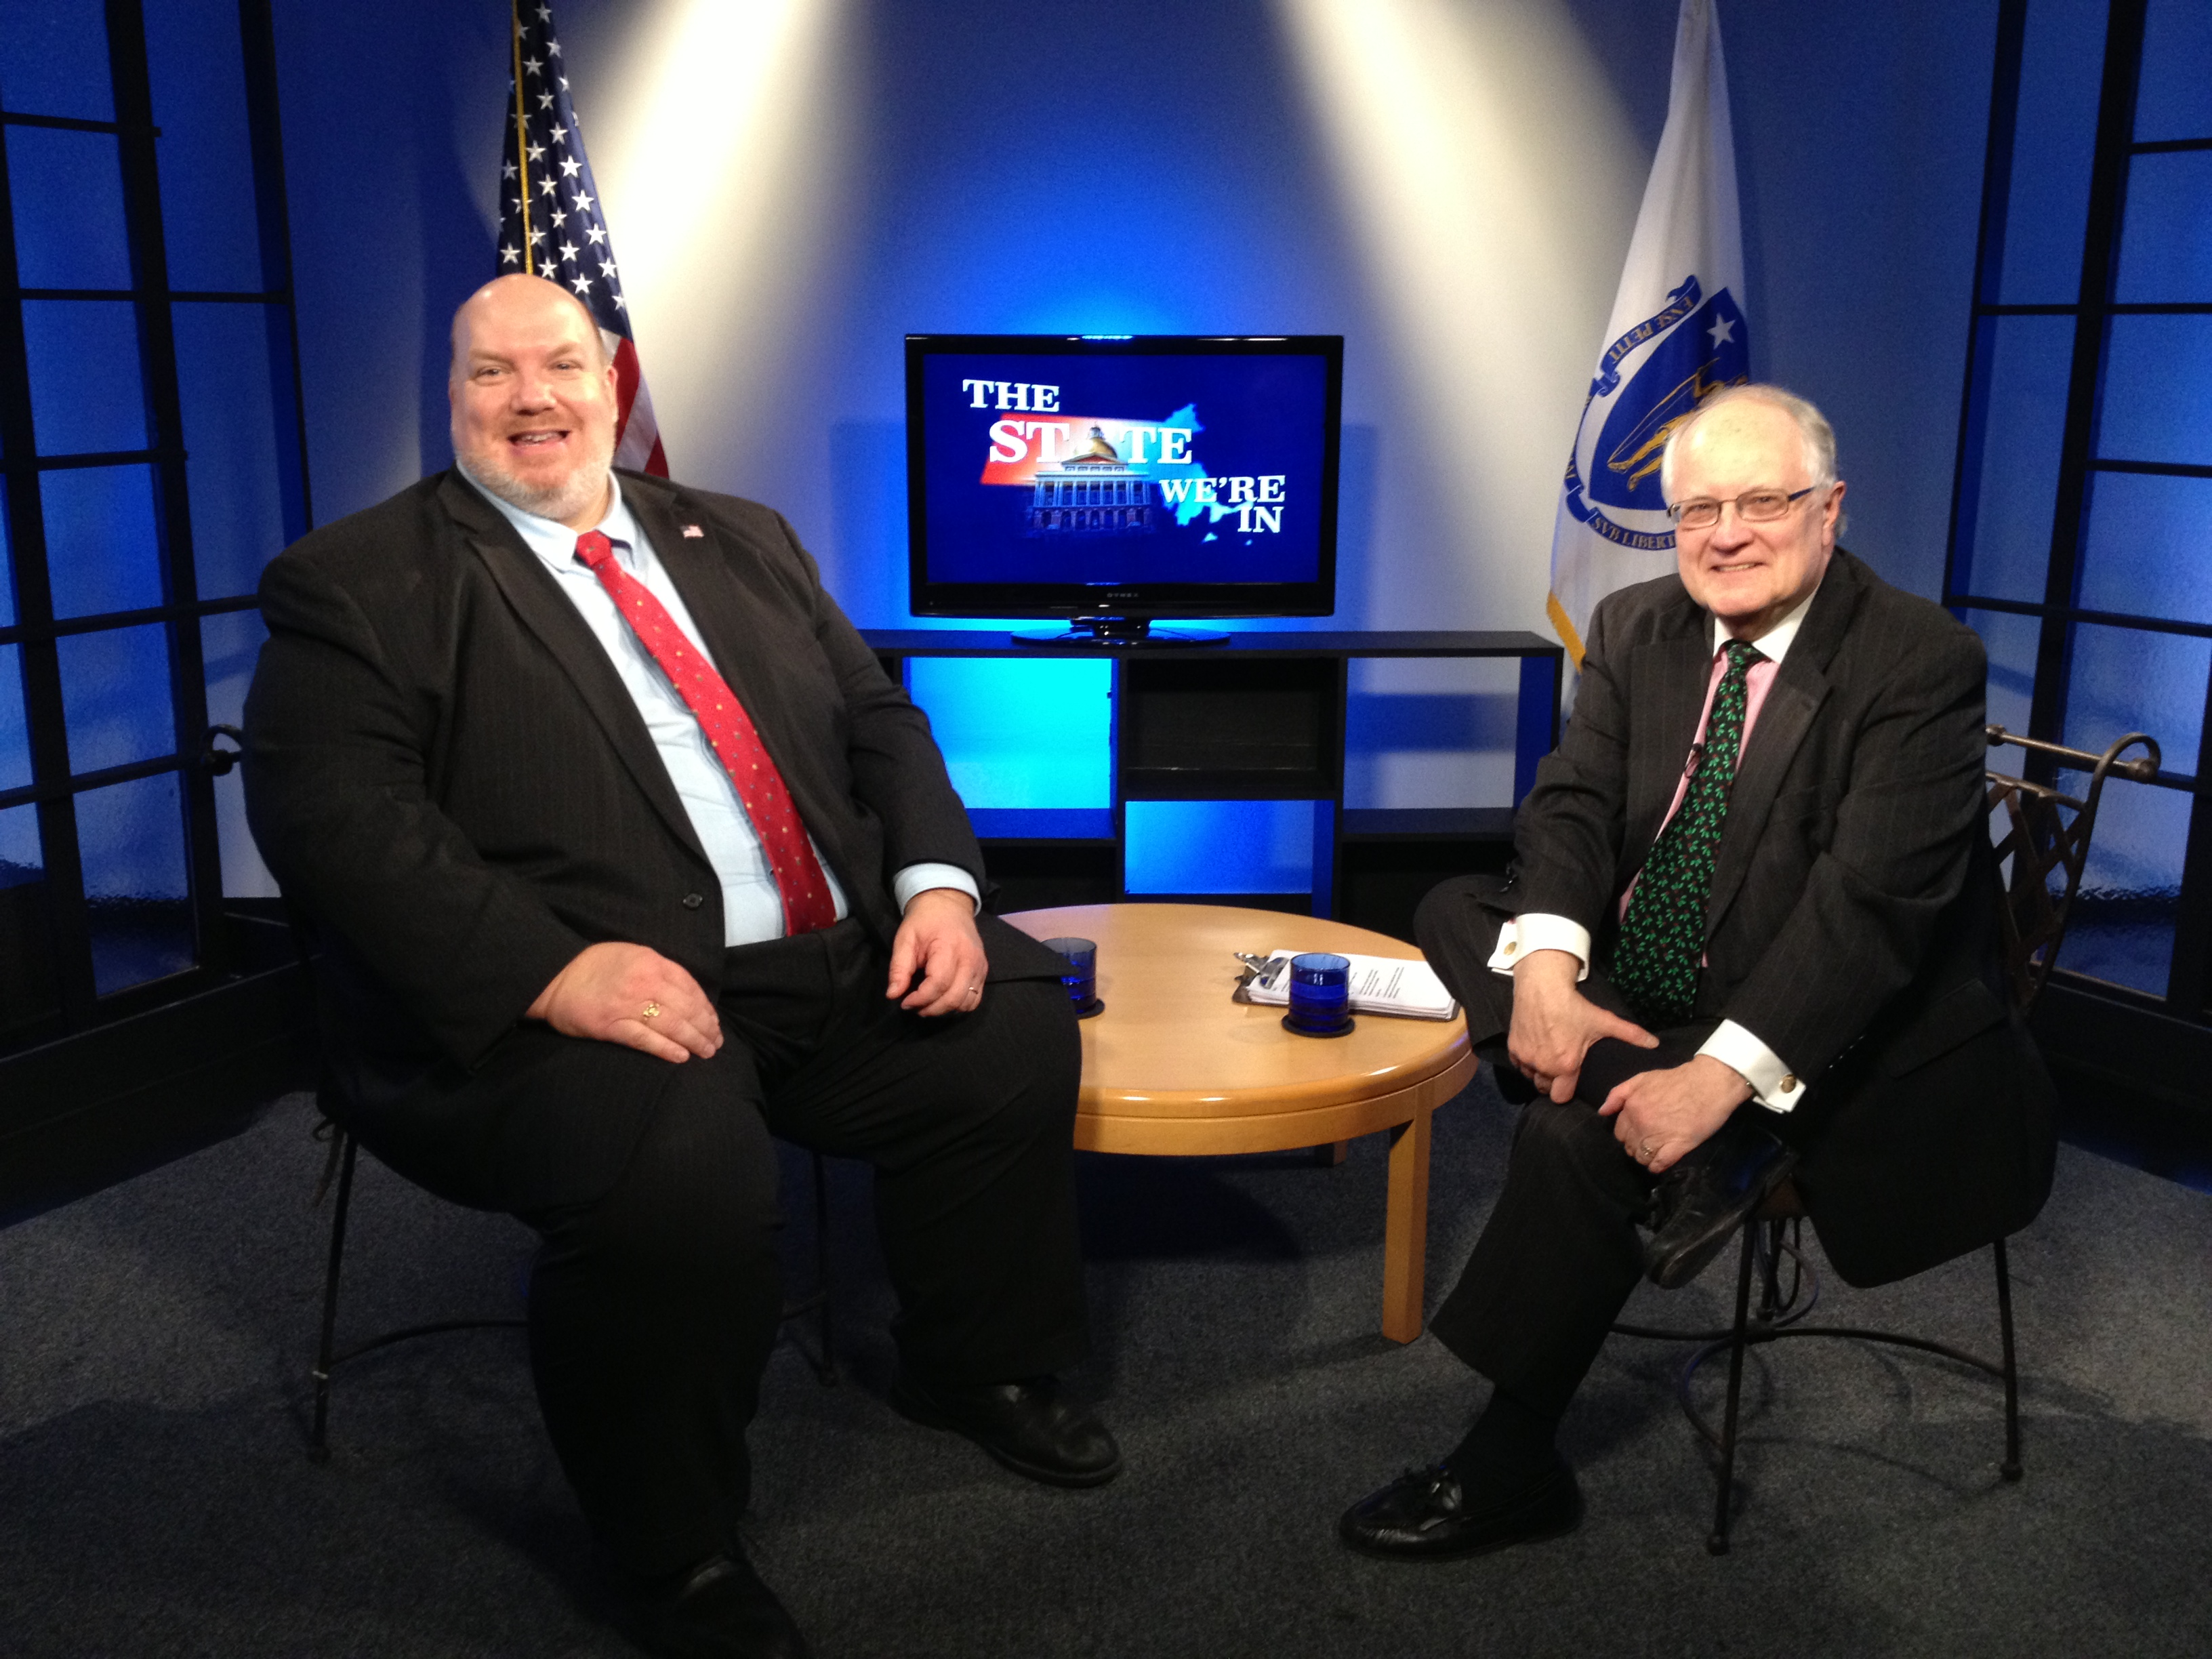 Westfield State Senator Don Humason joins host Jim Madigan on Connecting Point: The State We're In